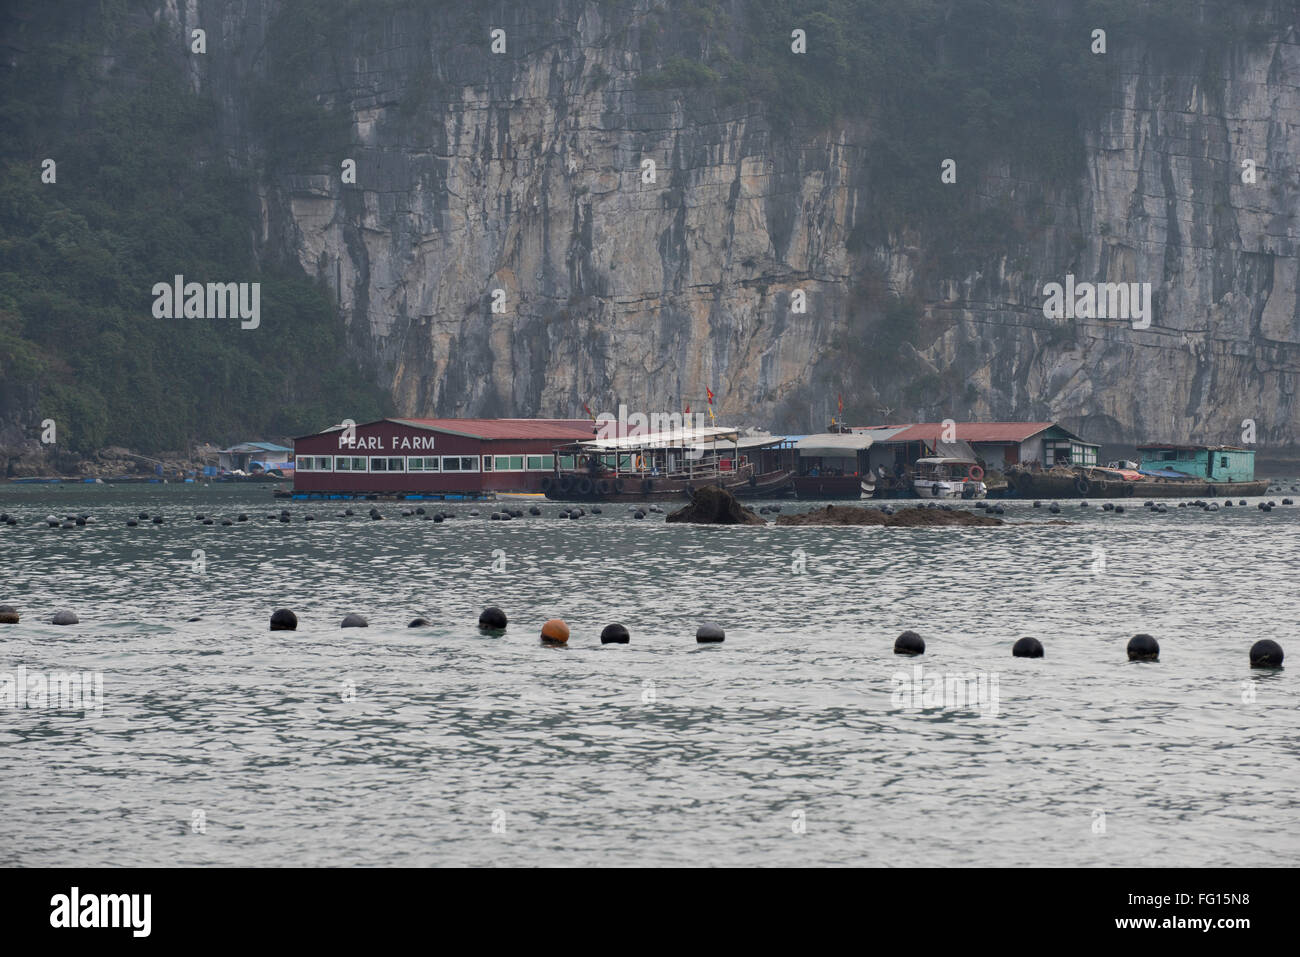 Floating buildings of a pearl farm rearing cultured pearls in oysters in Halong Bay, Northern Vietnam - Stock Image